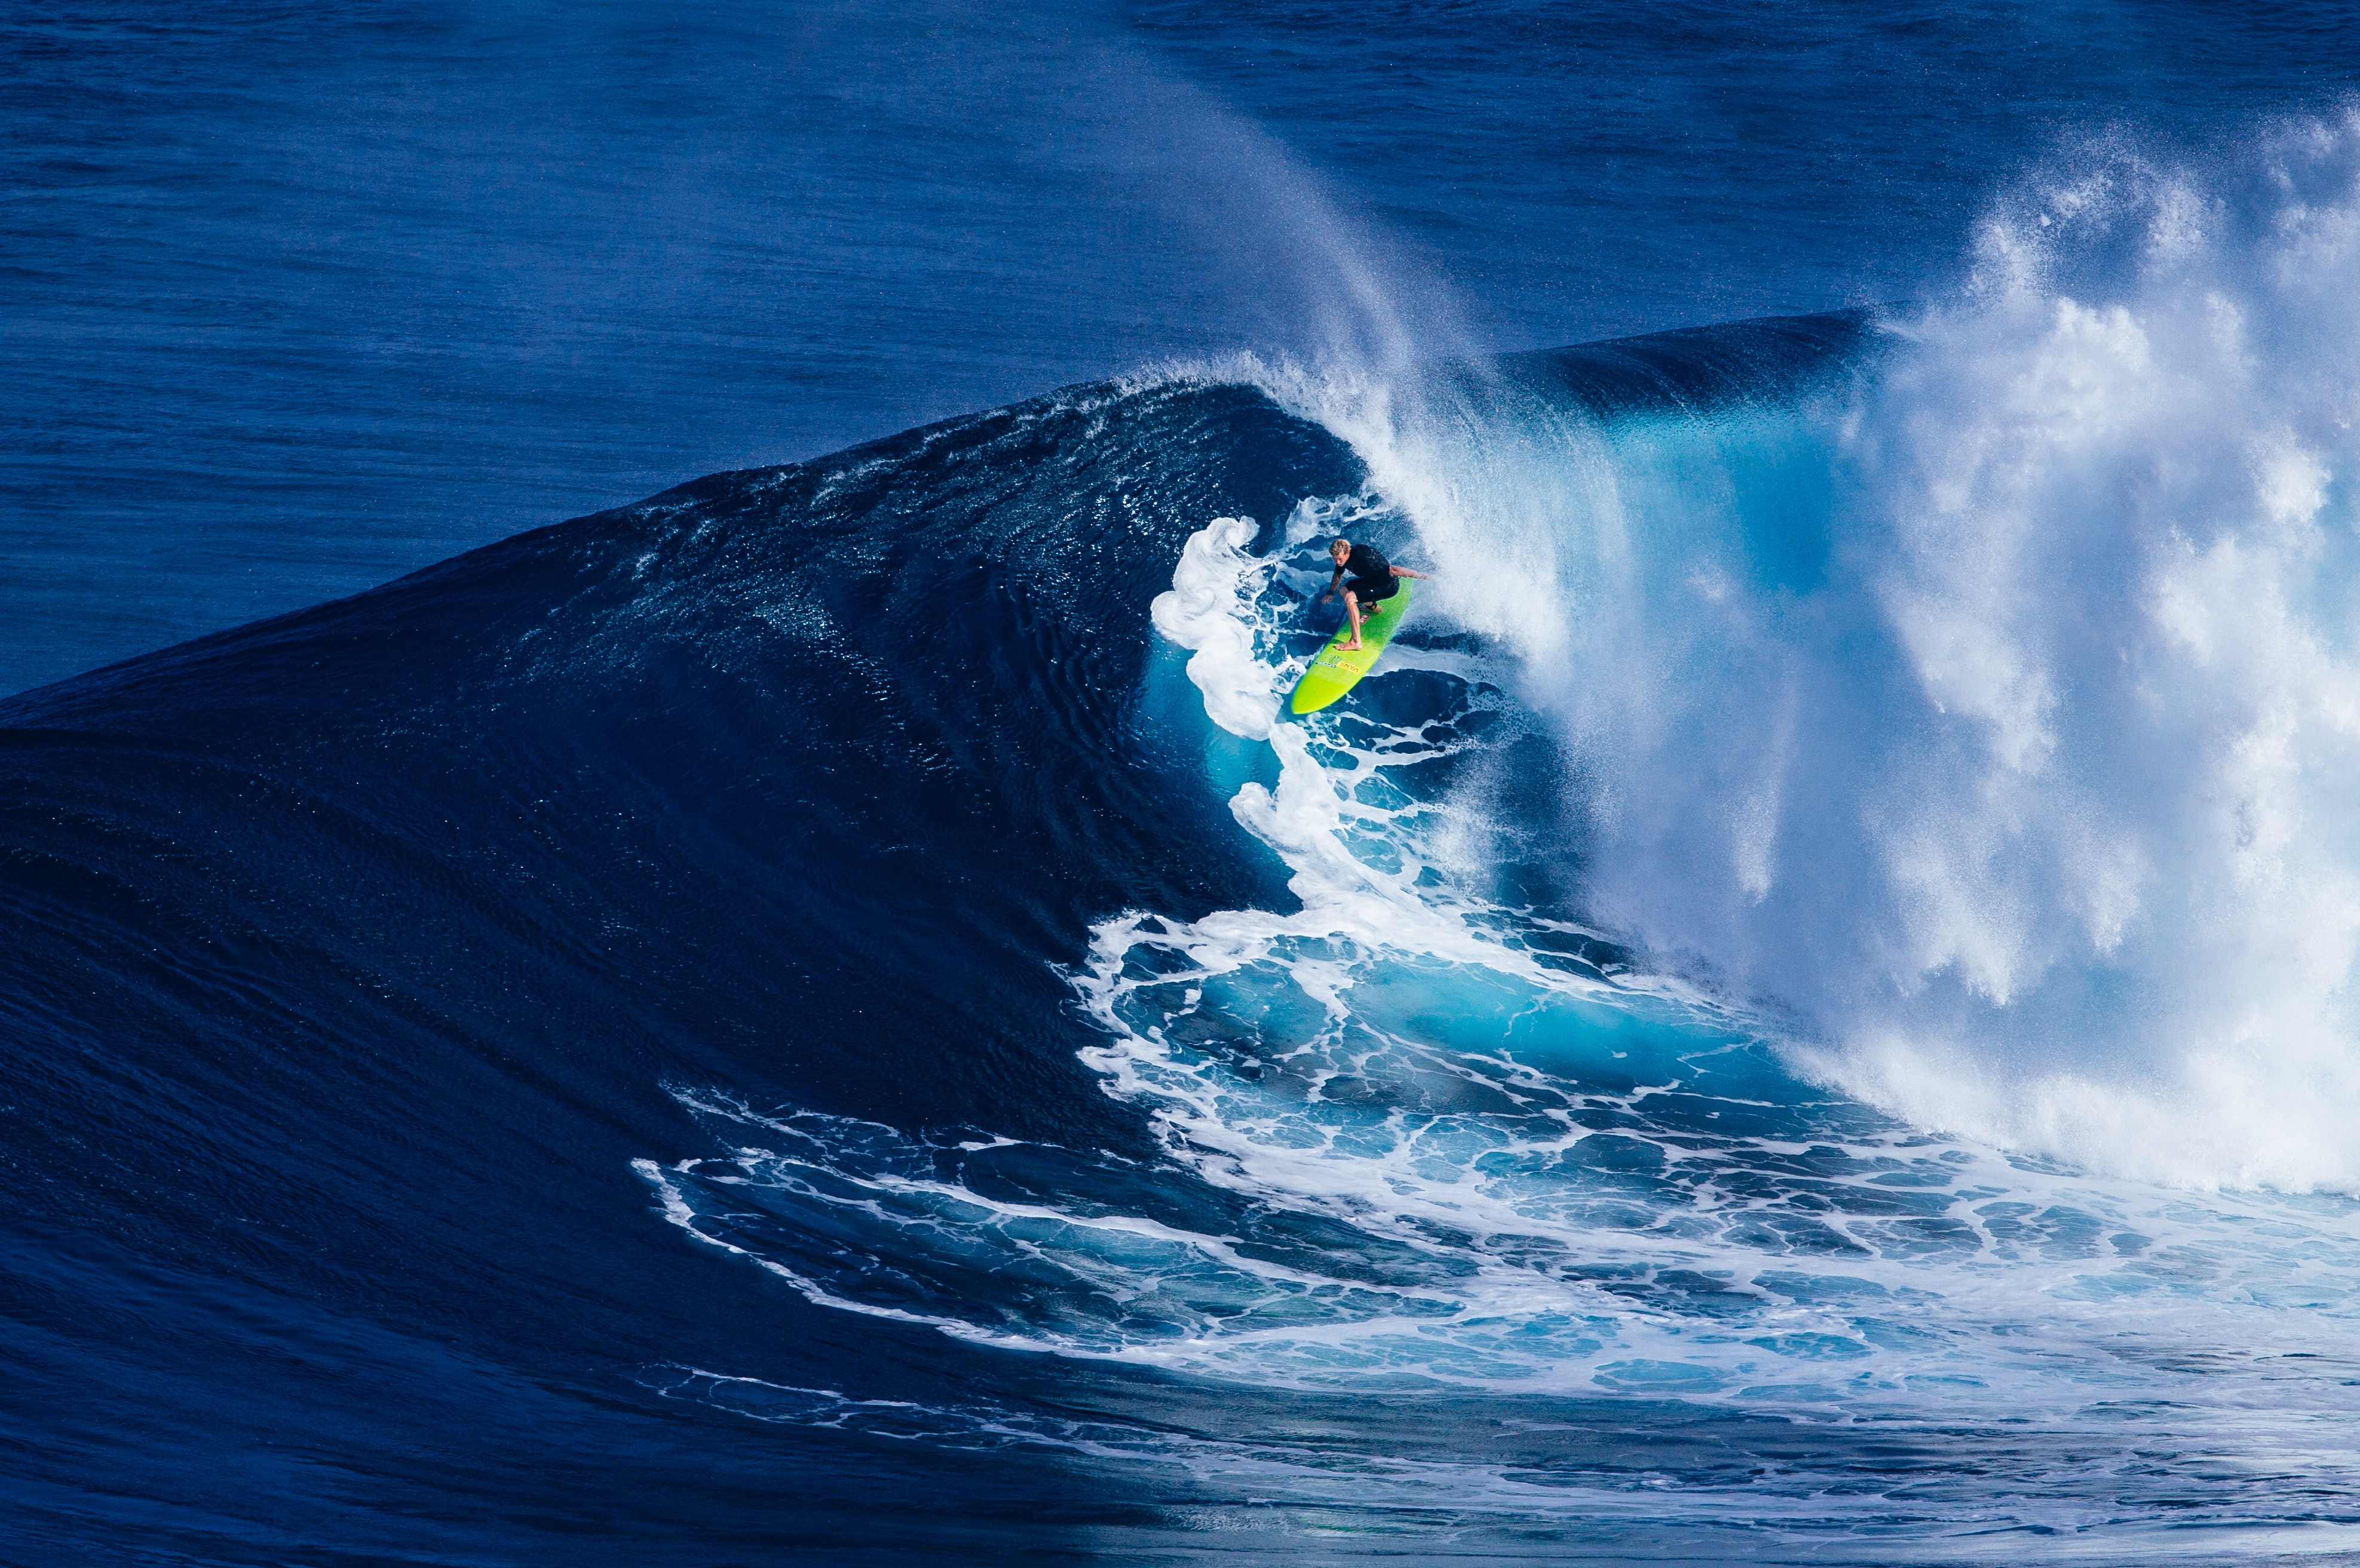 A surfer on a lime green surf board riding a massive blue wave